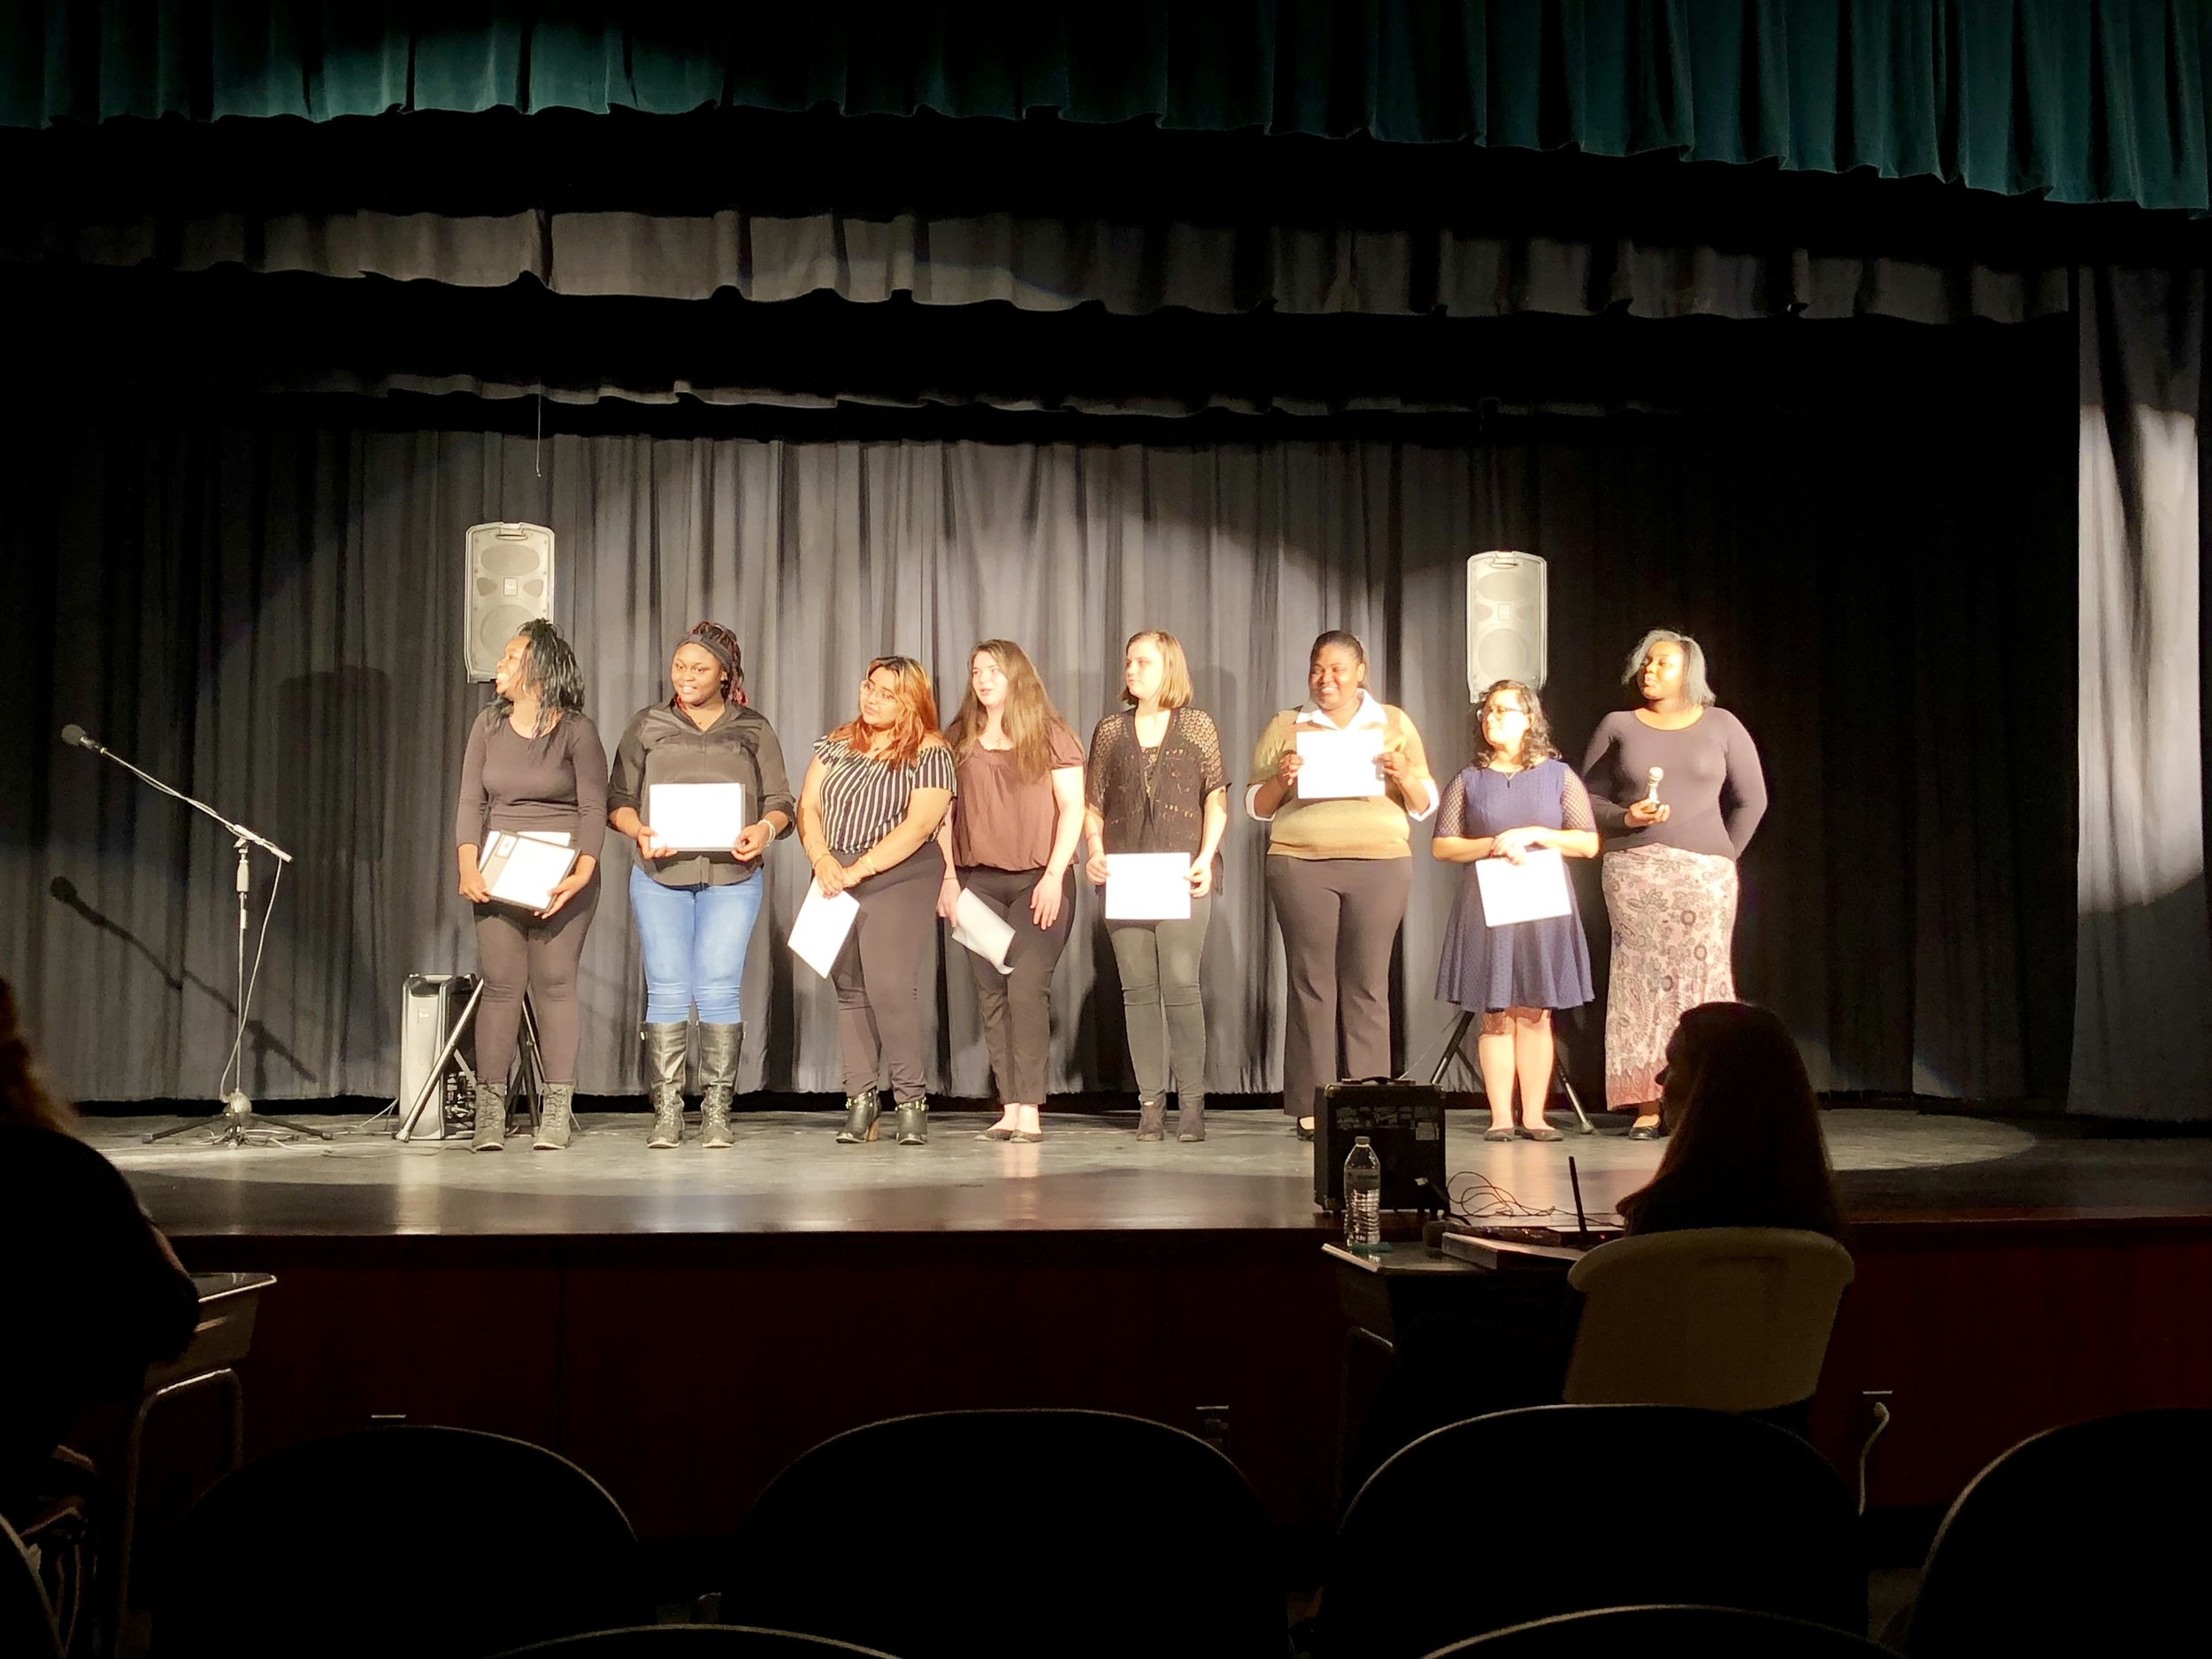 Poetry Out Loud competitors: L-R, Aaliyah Moore, Samantha Newton, Wendy Luviano, Hailey Braxton, Ashley Hood, Evelyn Allen, Anahi Zapata, Nyashia Sutton.  Photo by Catherine Hardee / Neuse News